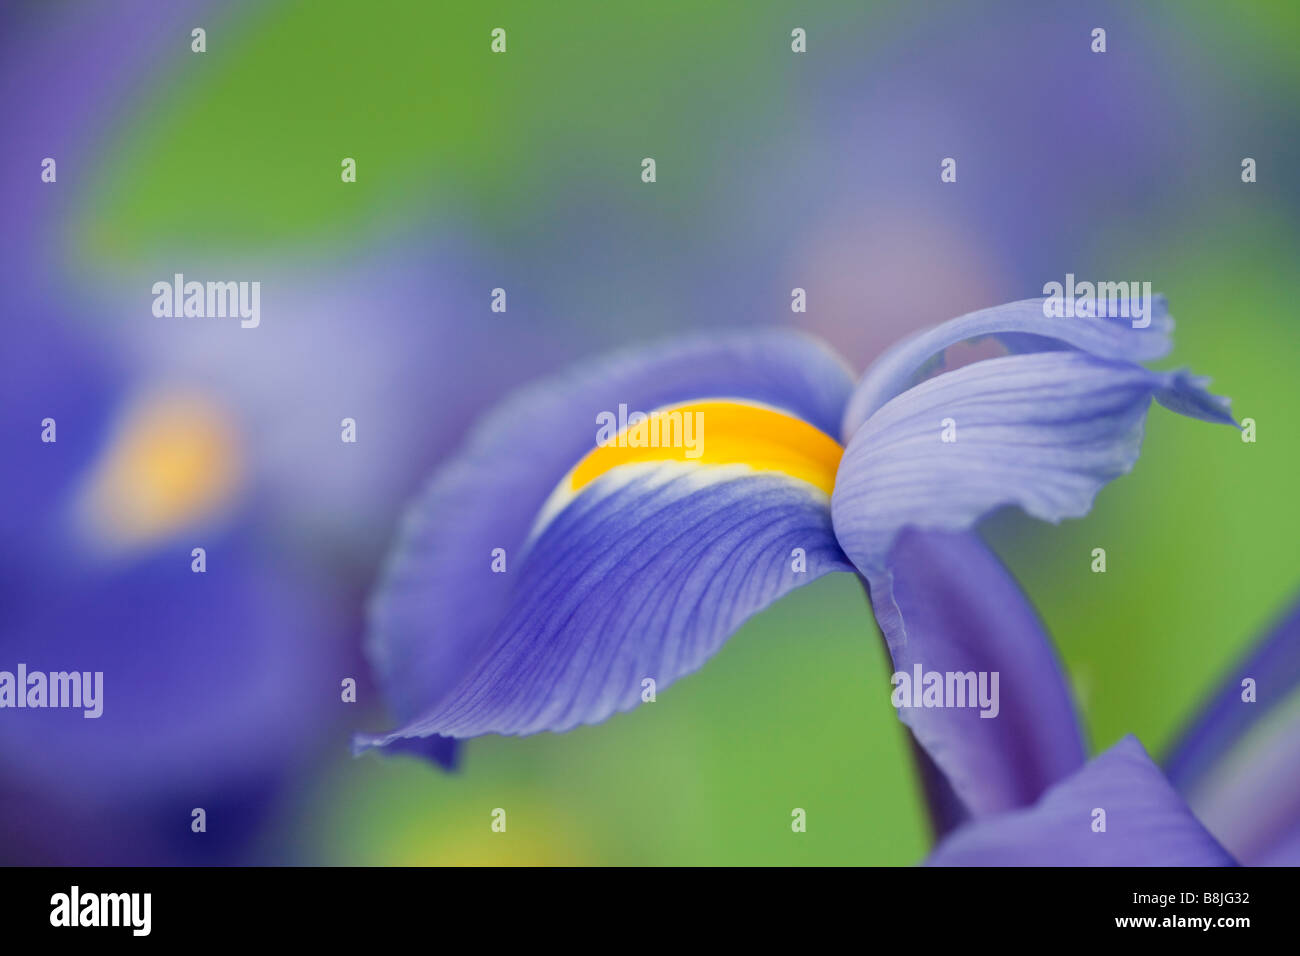 Blue violet Iris Iridaceae flowers close up on a plain green background - Stock Image